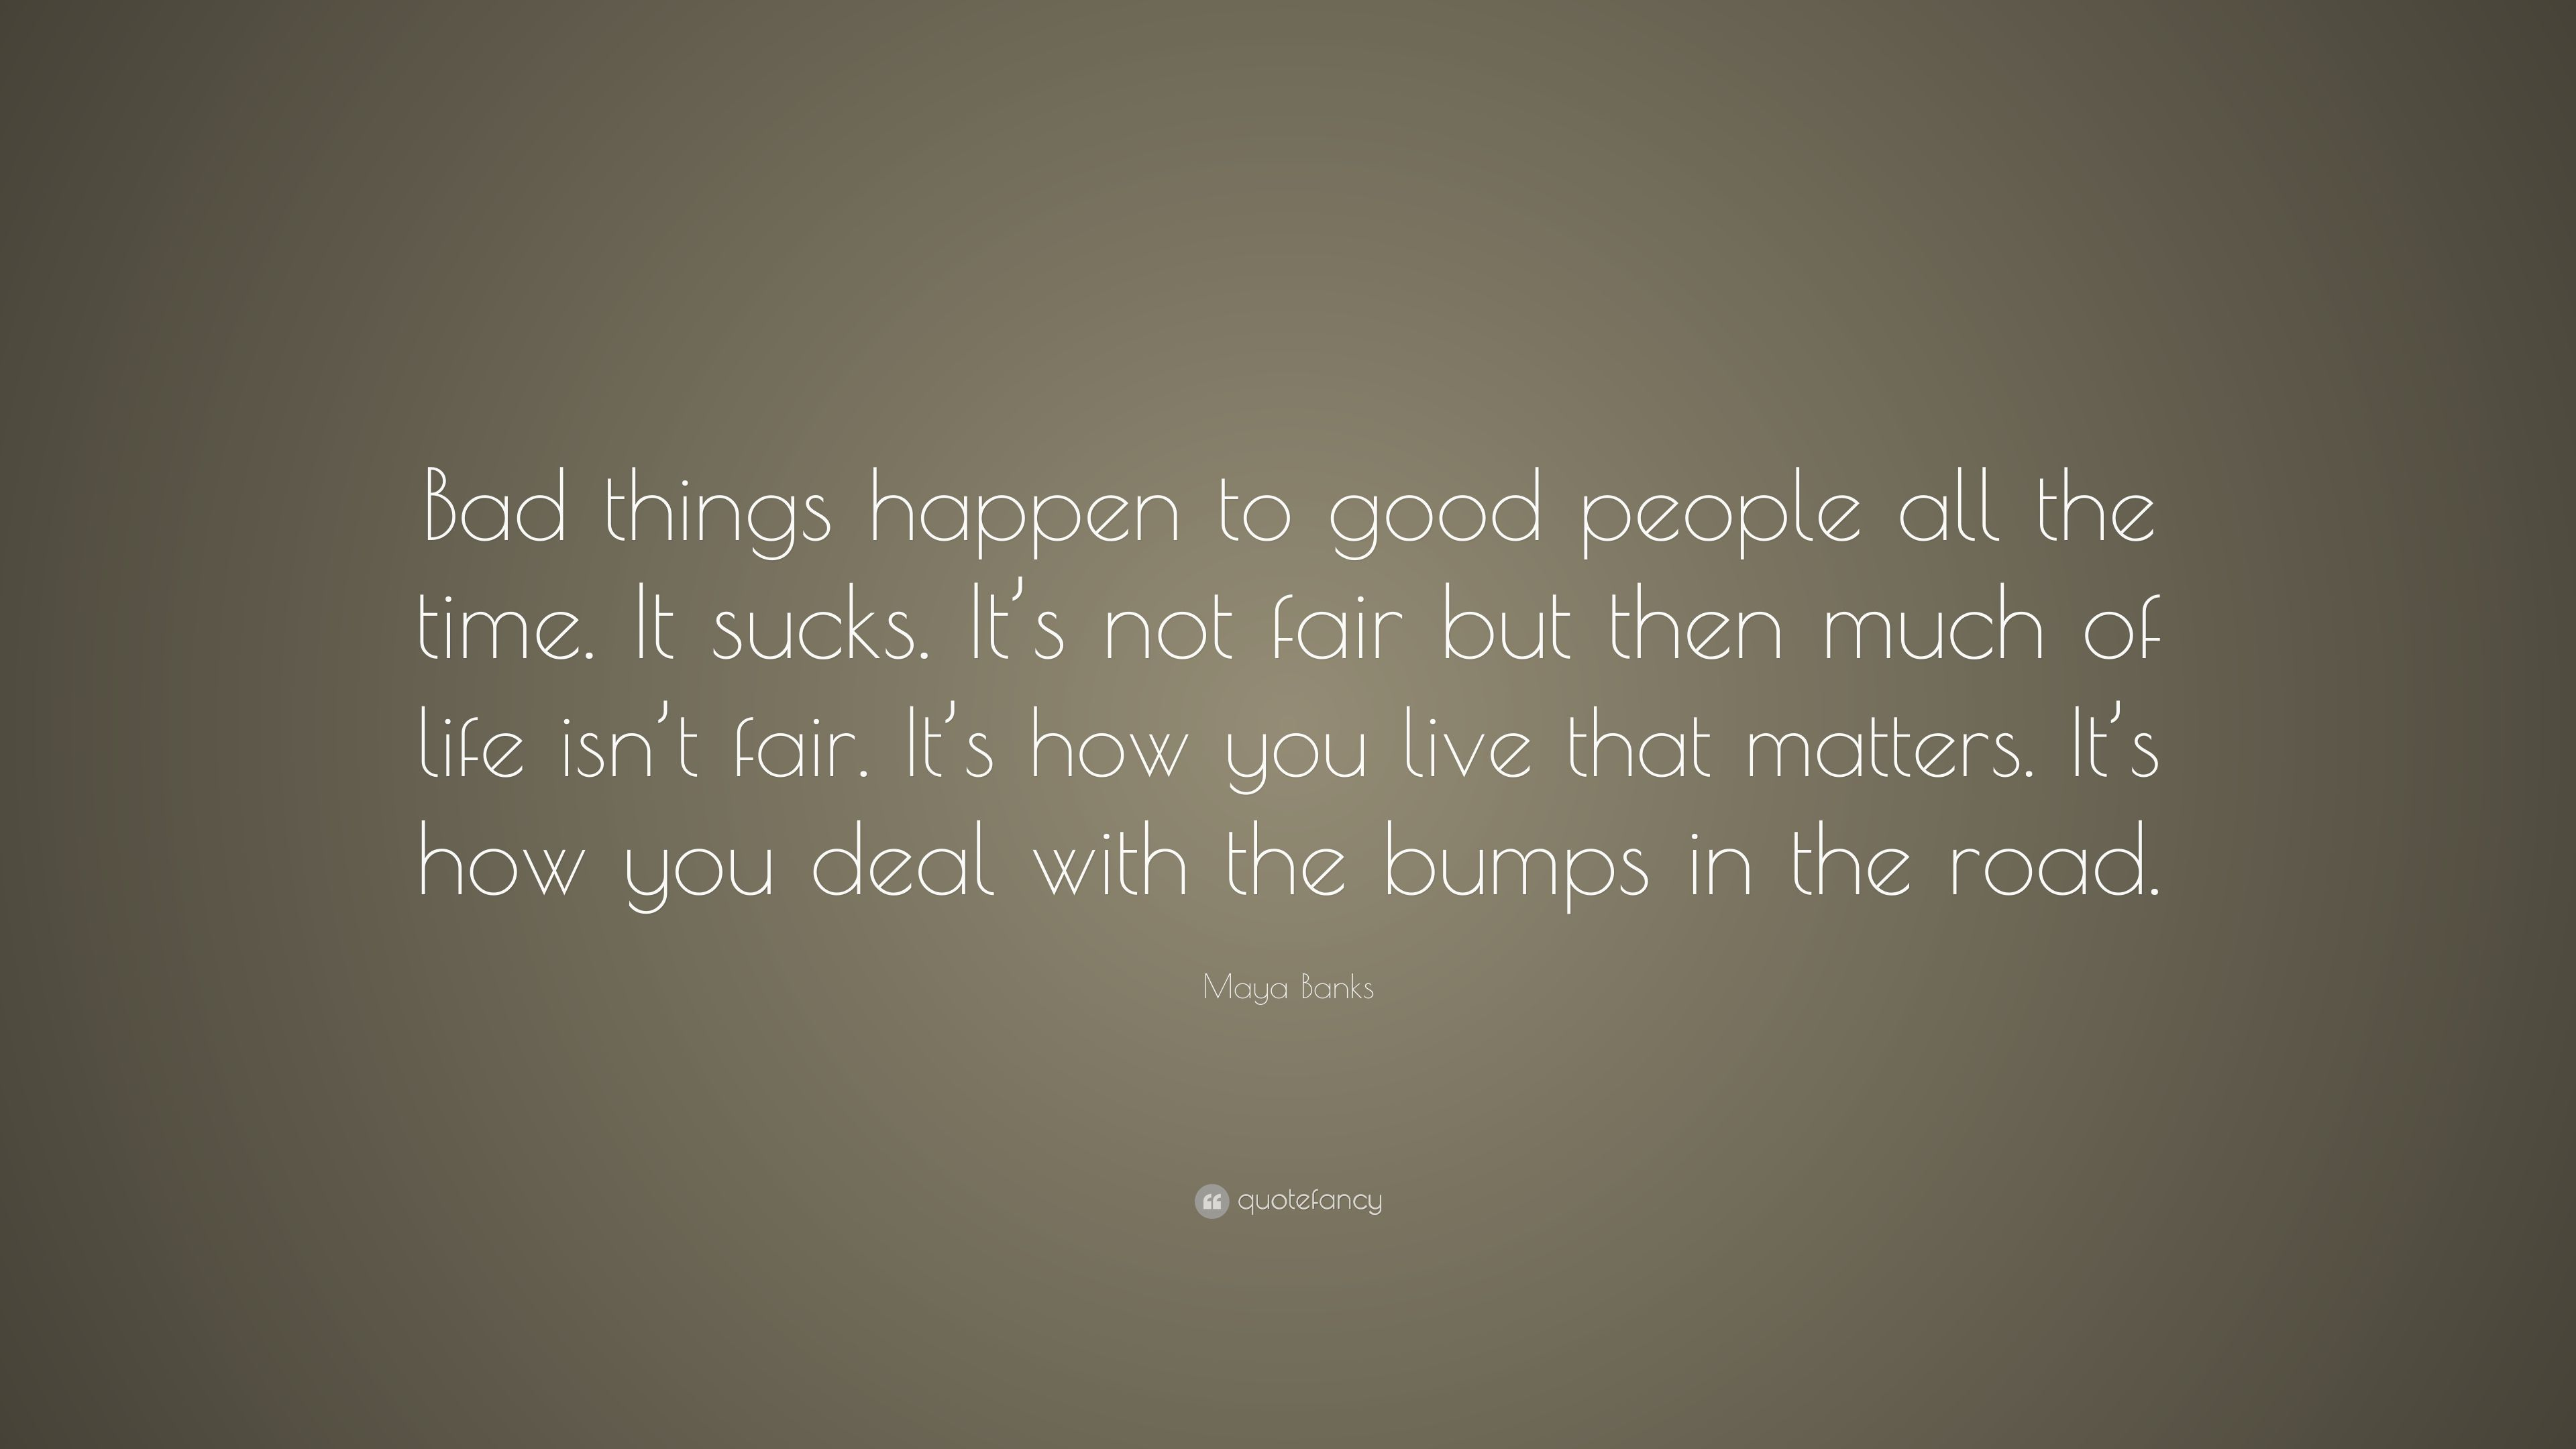 Quotes About Good People | Maya Banks Quote Bad Things Happen To Good People All The Time It